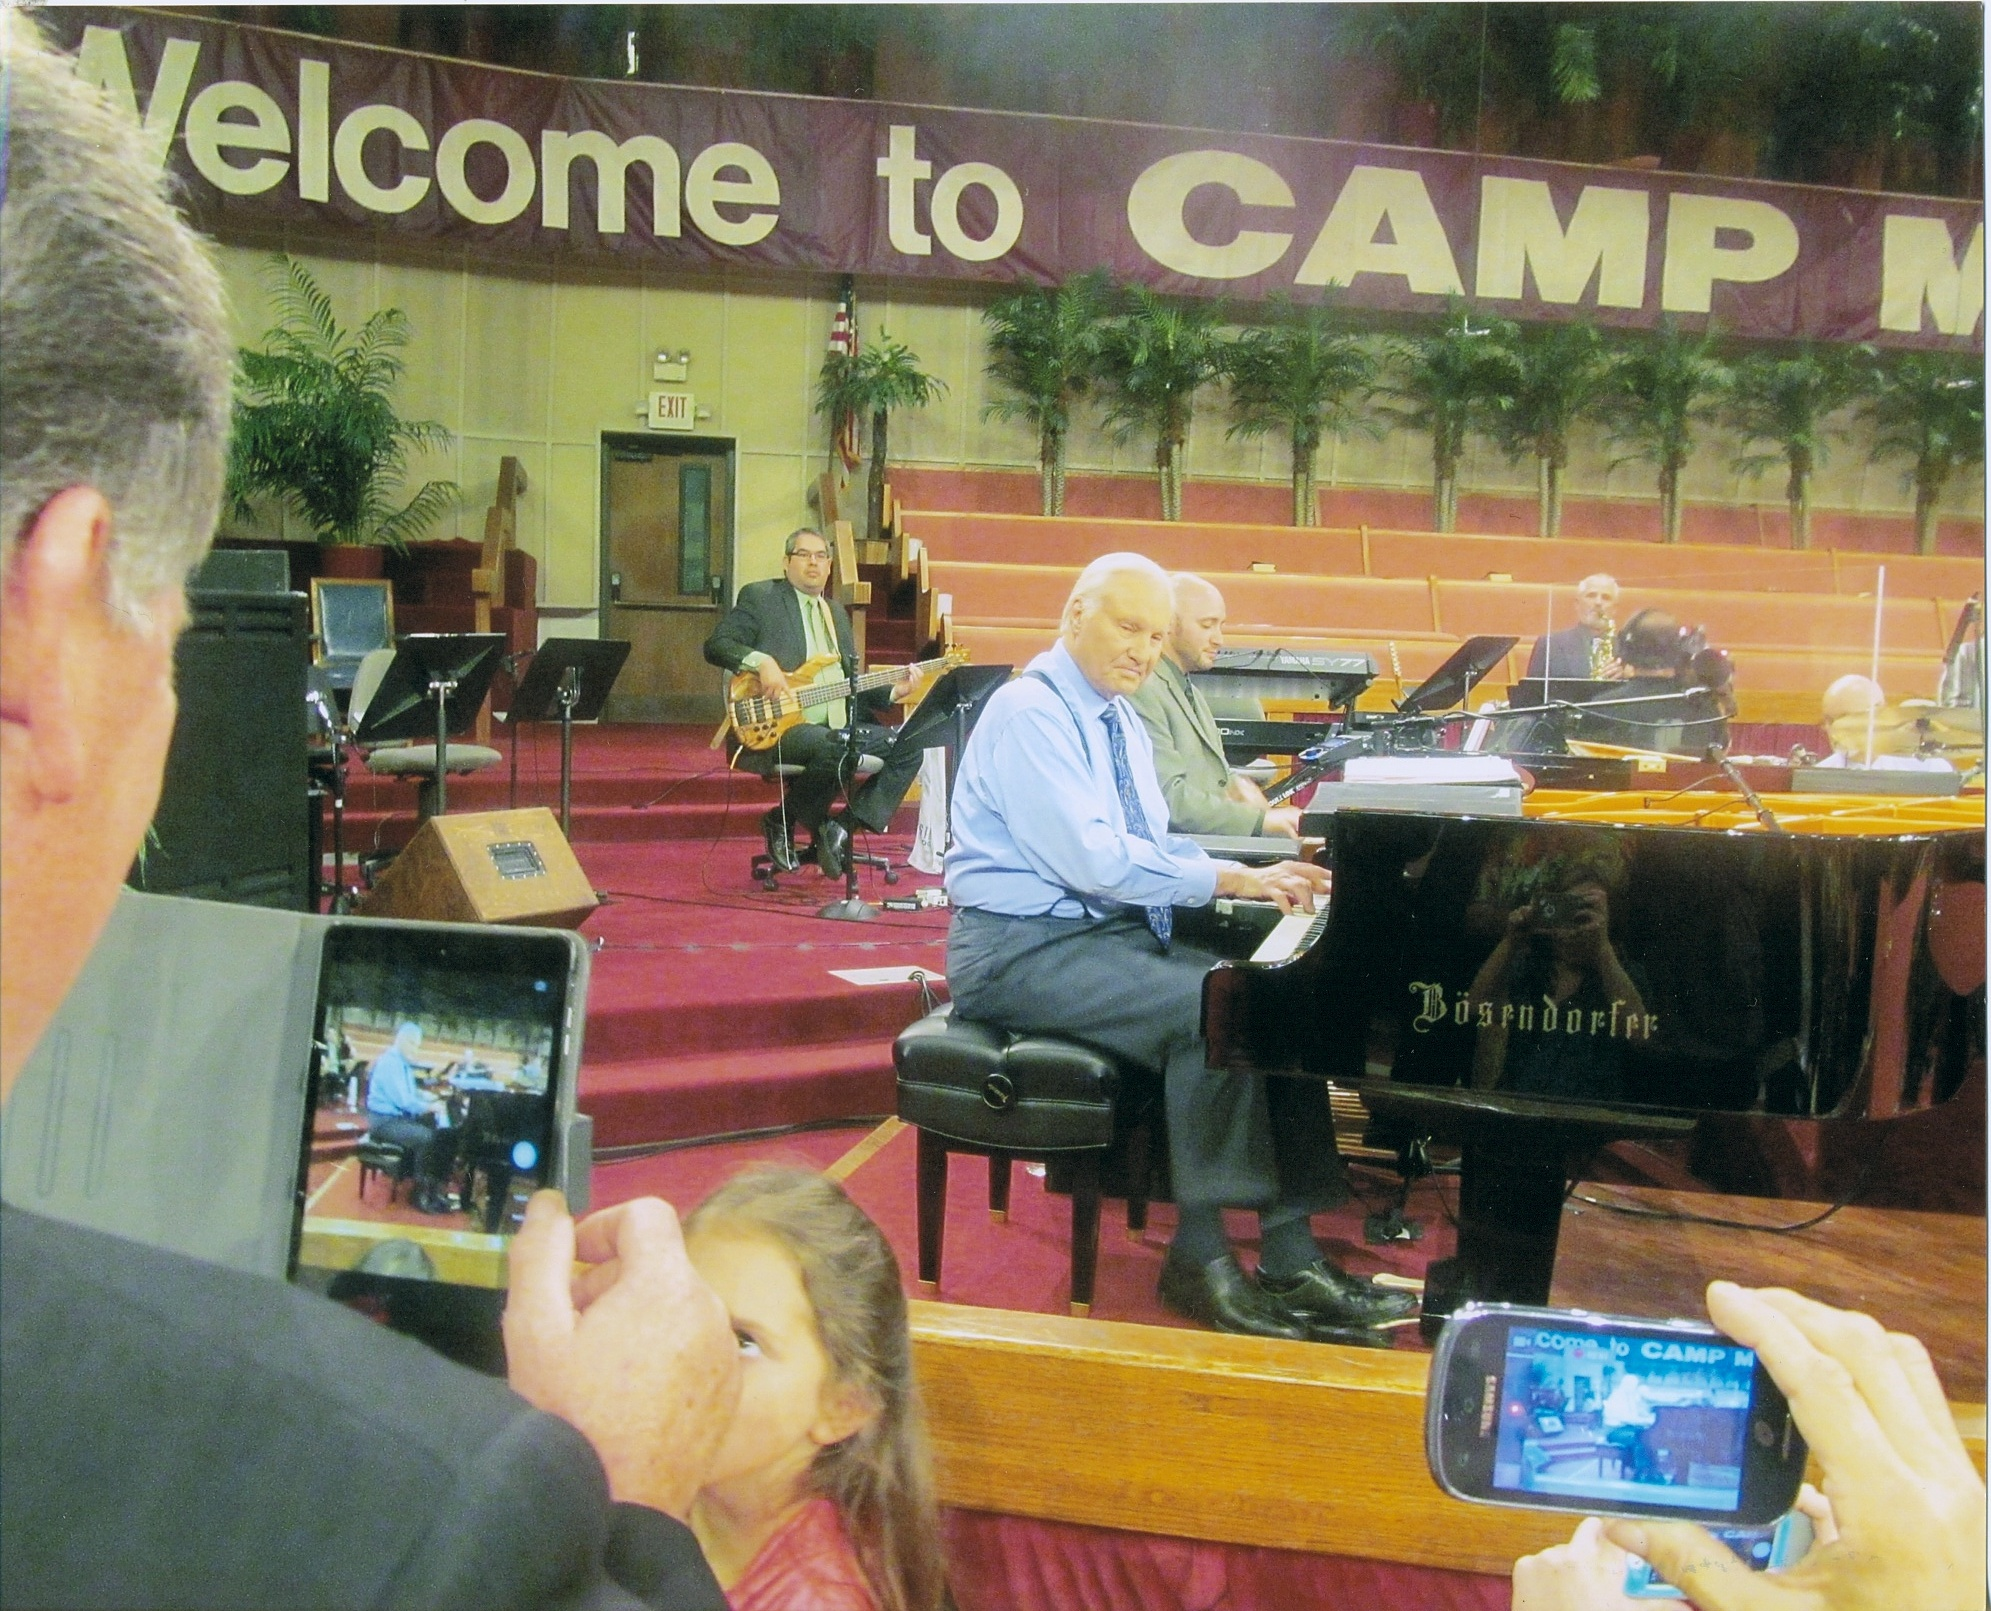 Evangelist Jimmy Swaggart on the key board